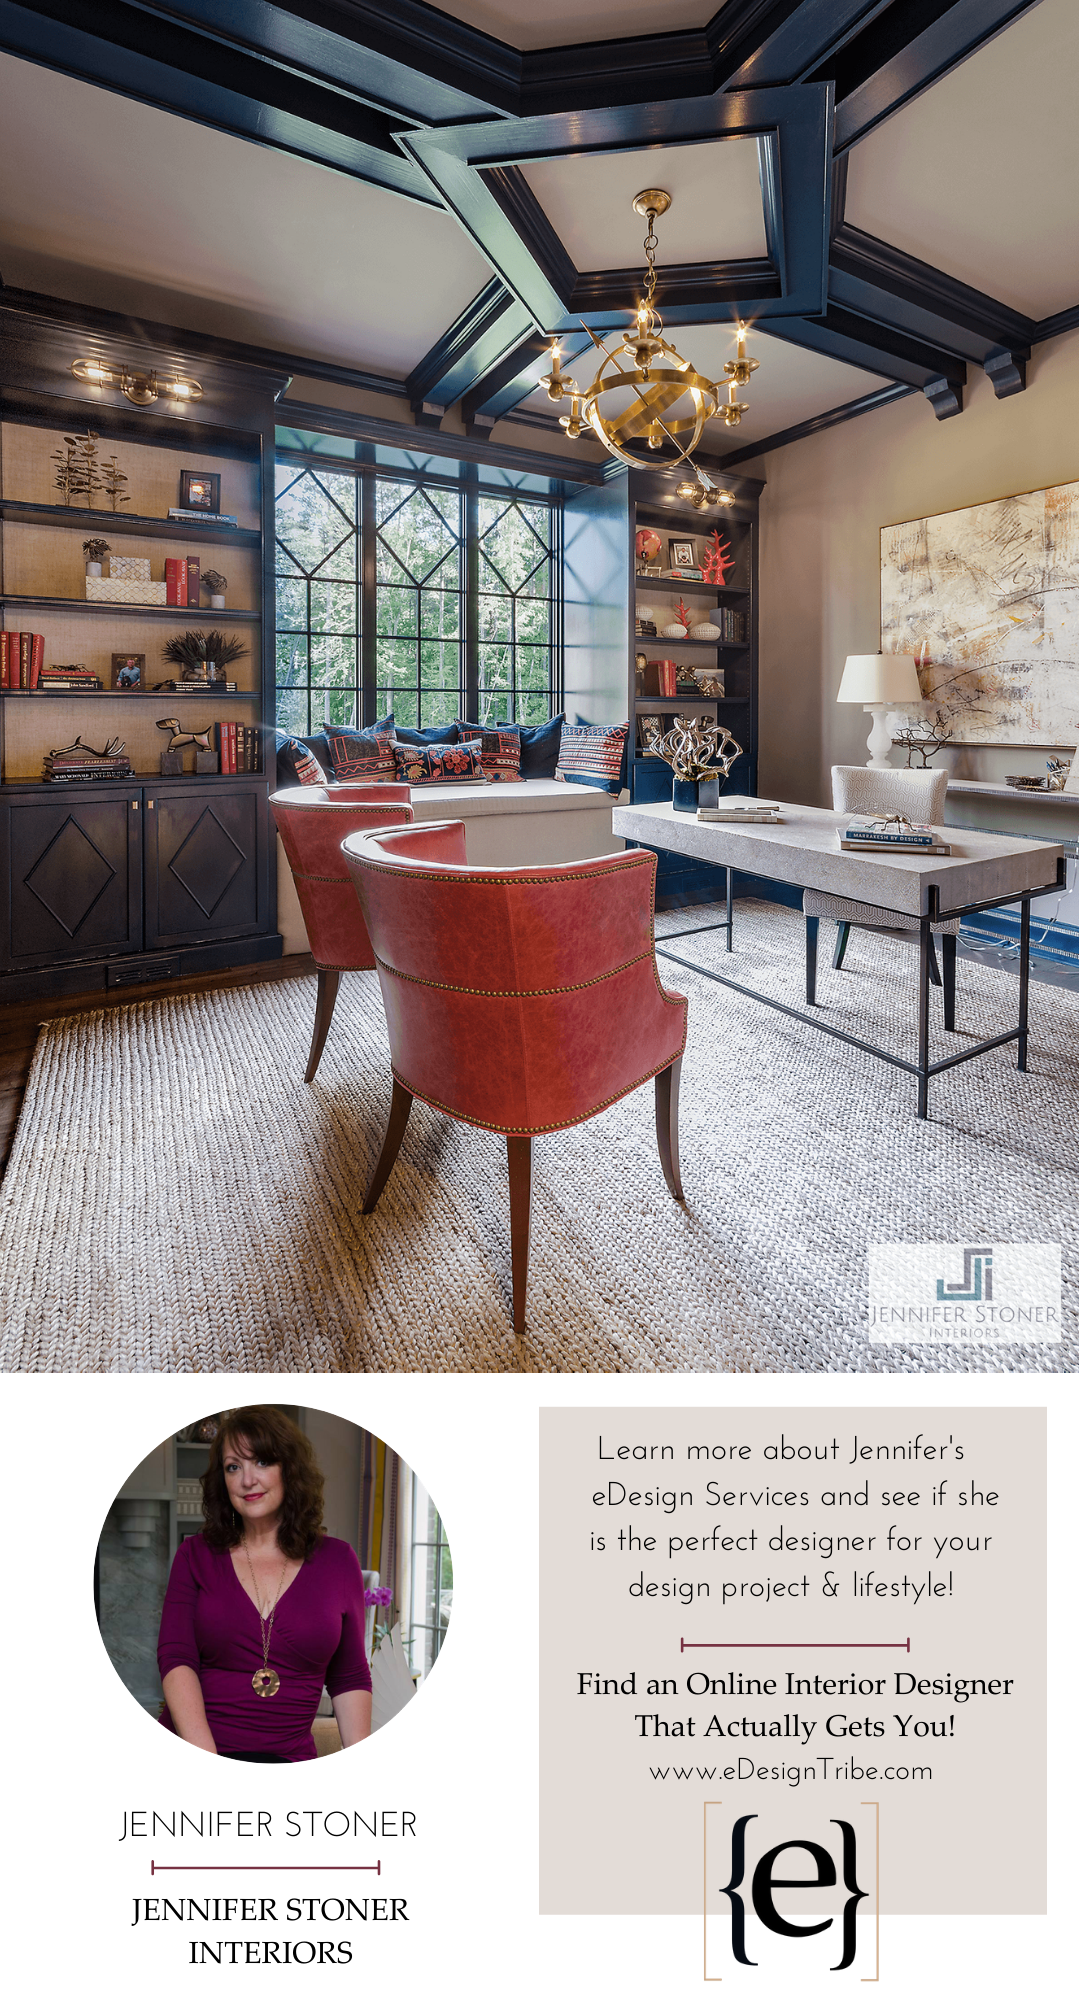 Learn more about Jennifer's services and see if she's the e-designer for you!  >> jenniferstonerinteriors.com <<  #edesigntribe #edesignrevolution #interiordesign #edesign #onlineinteriordesign #edesignservices #virtualdesign #edesigner #fullservice